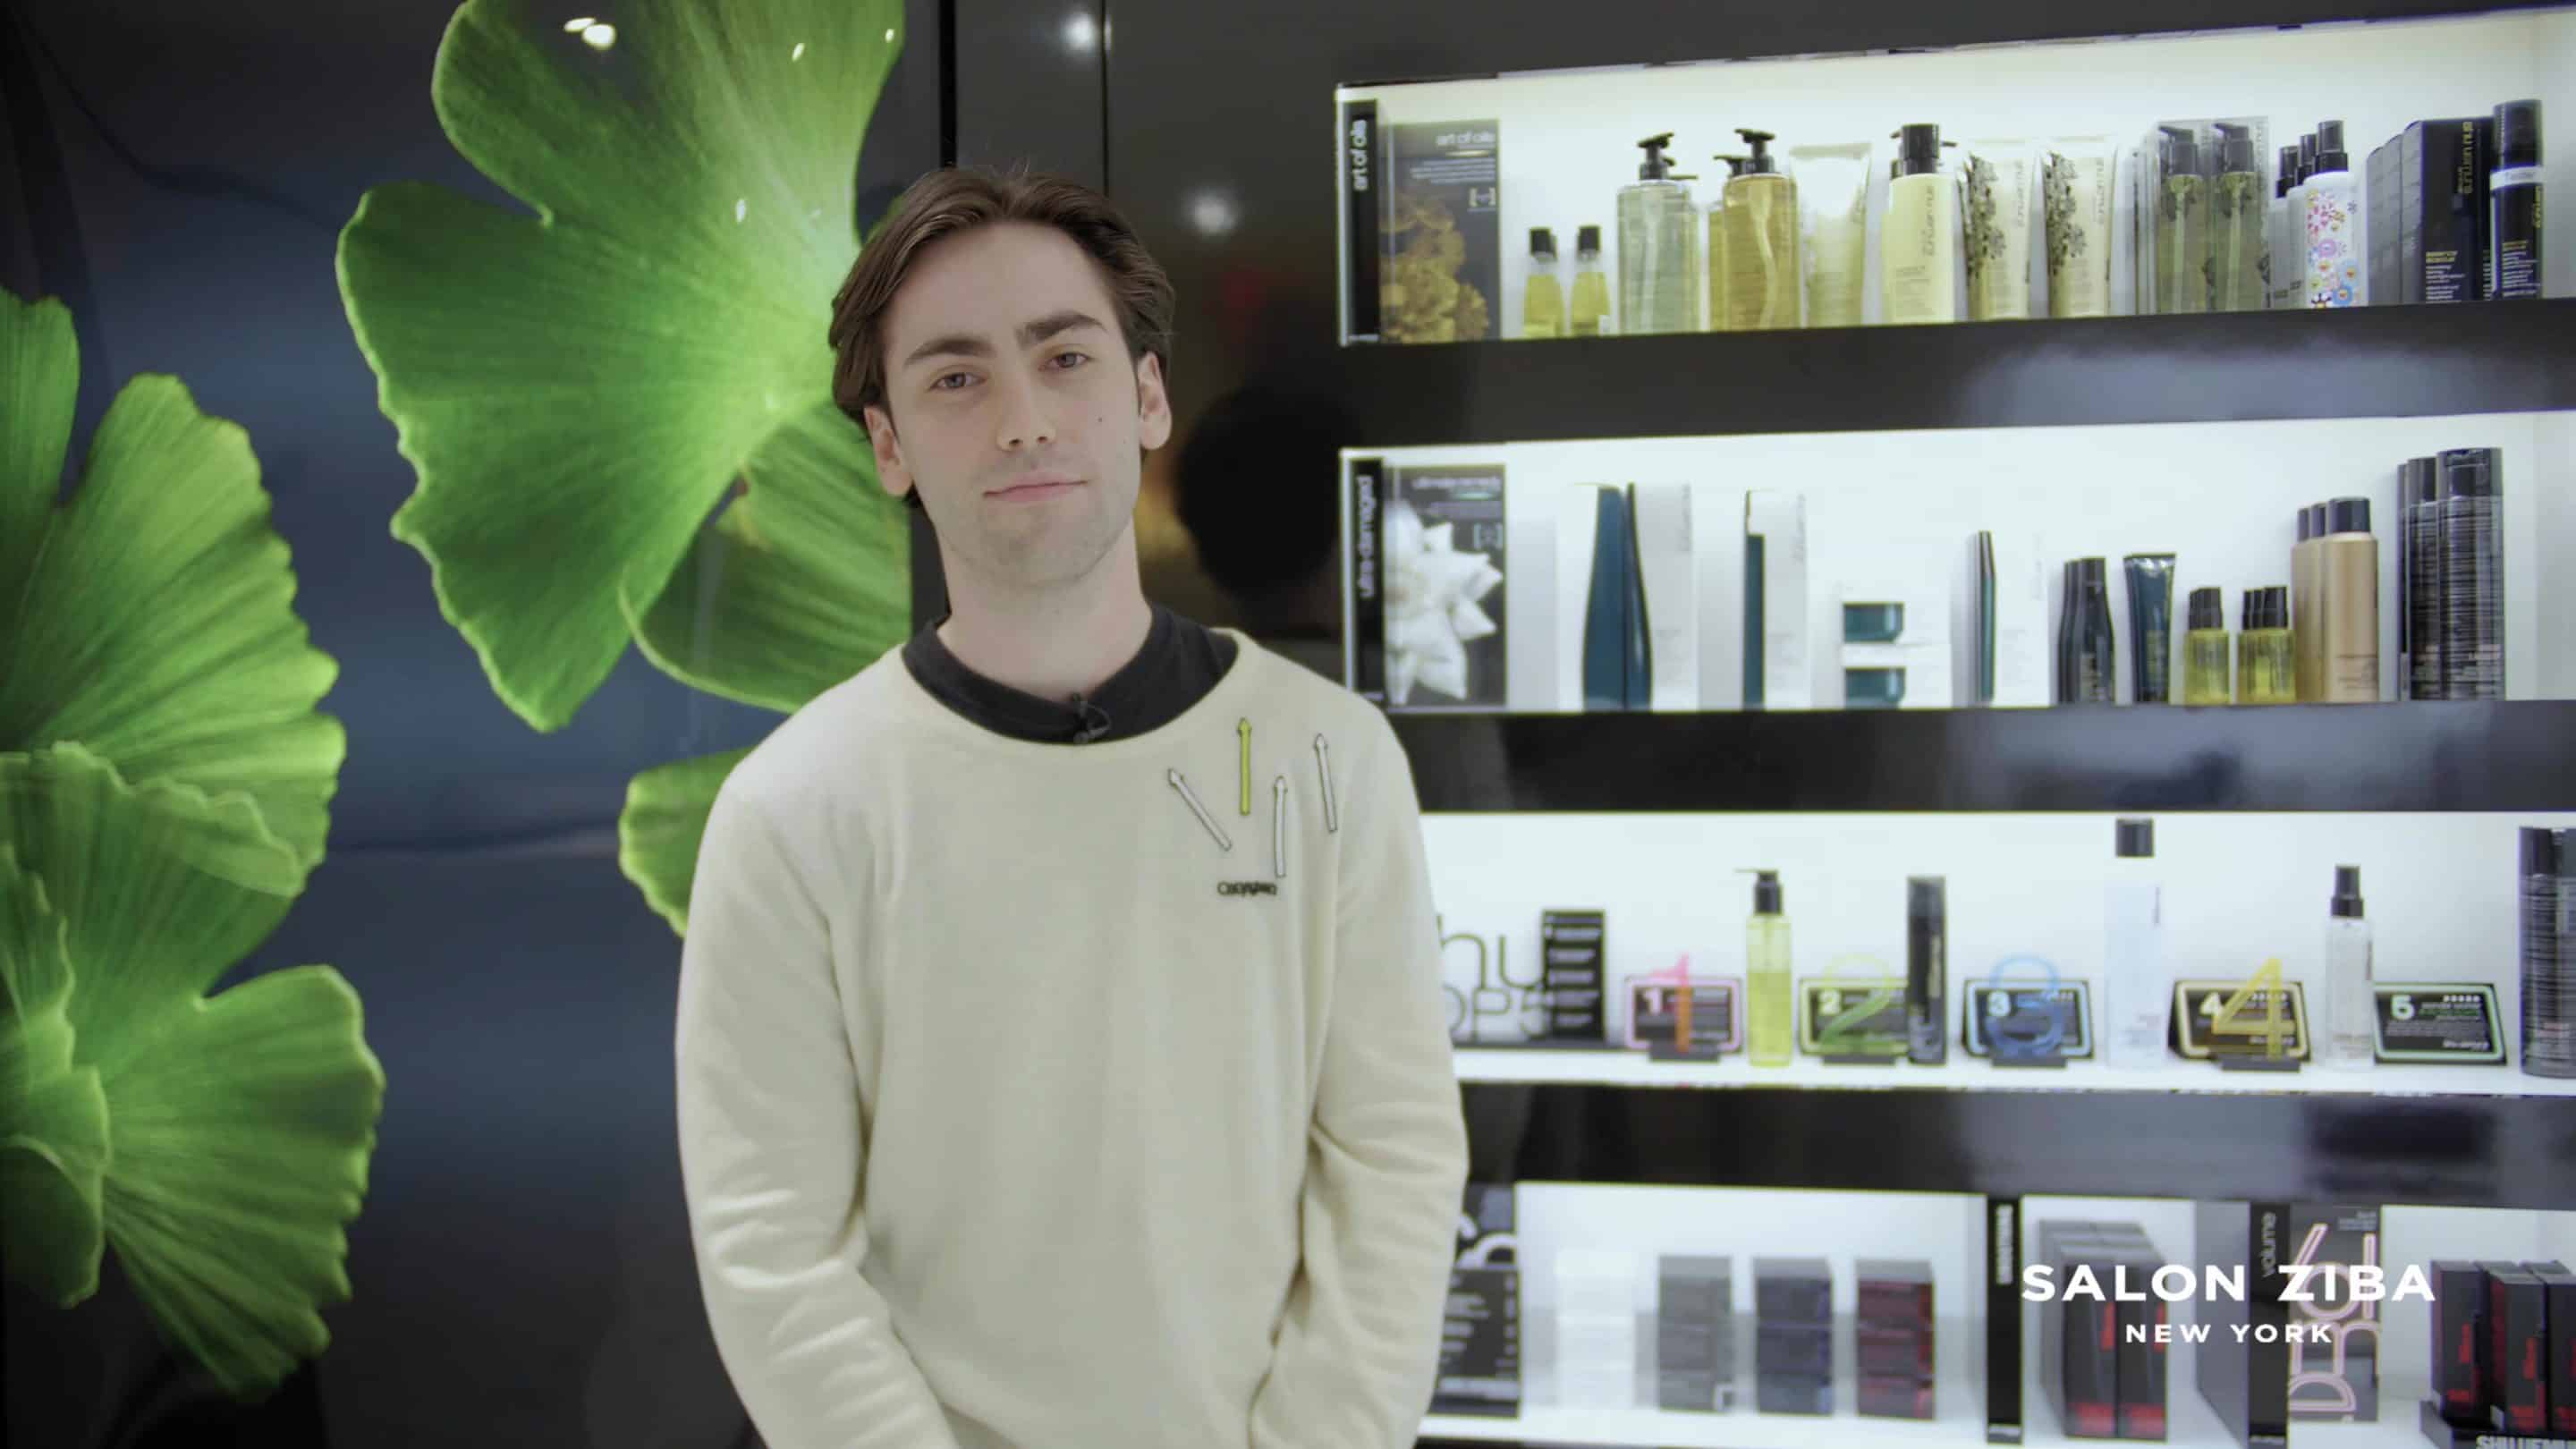 Smiling man in a white sweater standing in front of hair products